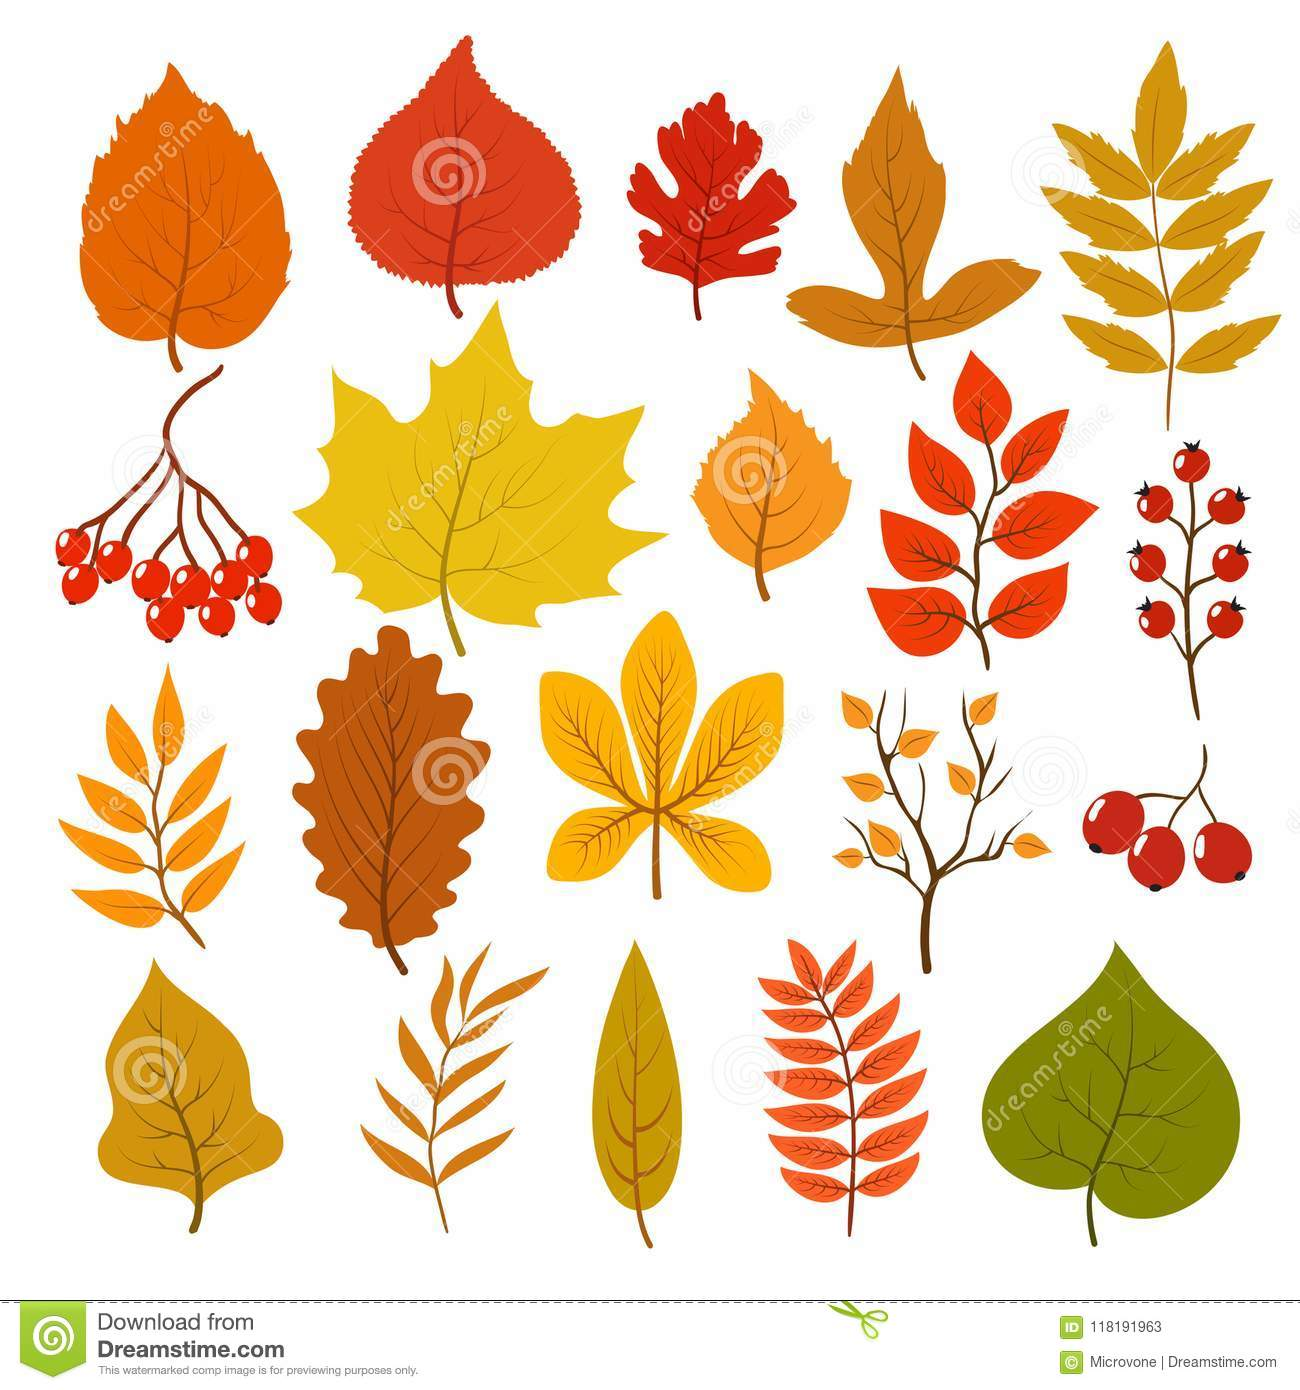 Golden And Red Autumn Leaves Brunches And Berries Fall Leaf Vector Cartoon Collection Isolated On White Background Stock Vector Illustration Of Floral Foliage 118191963